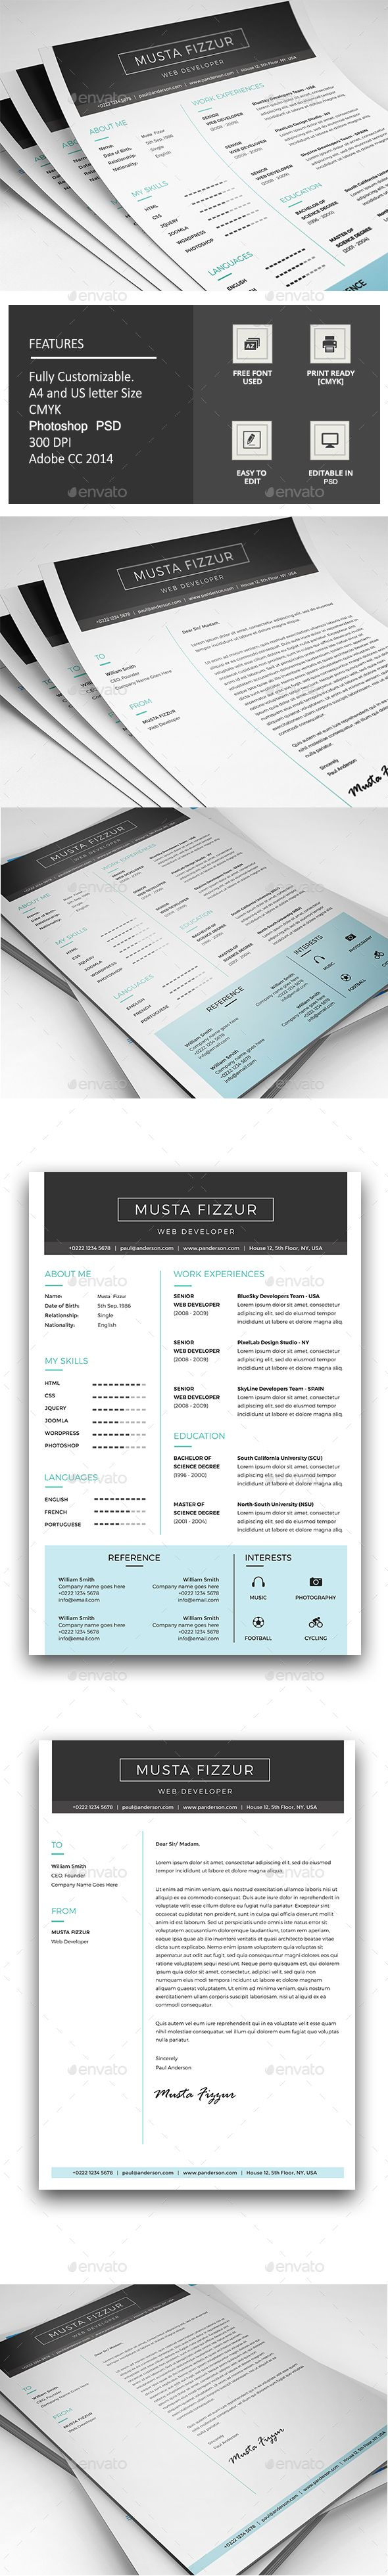 38 Best Cv Images On Pinterest